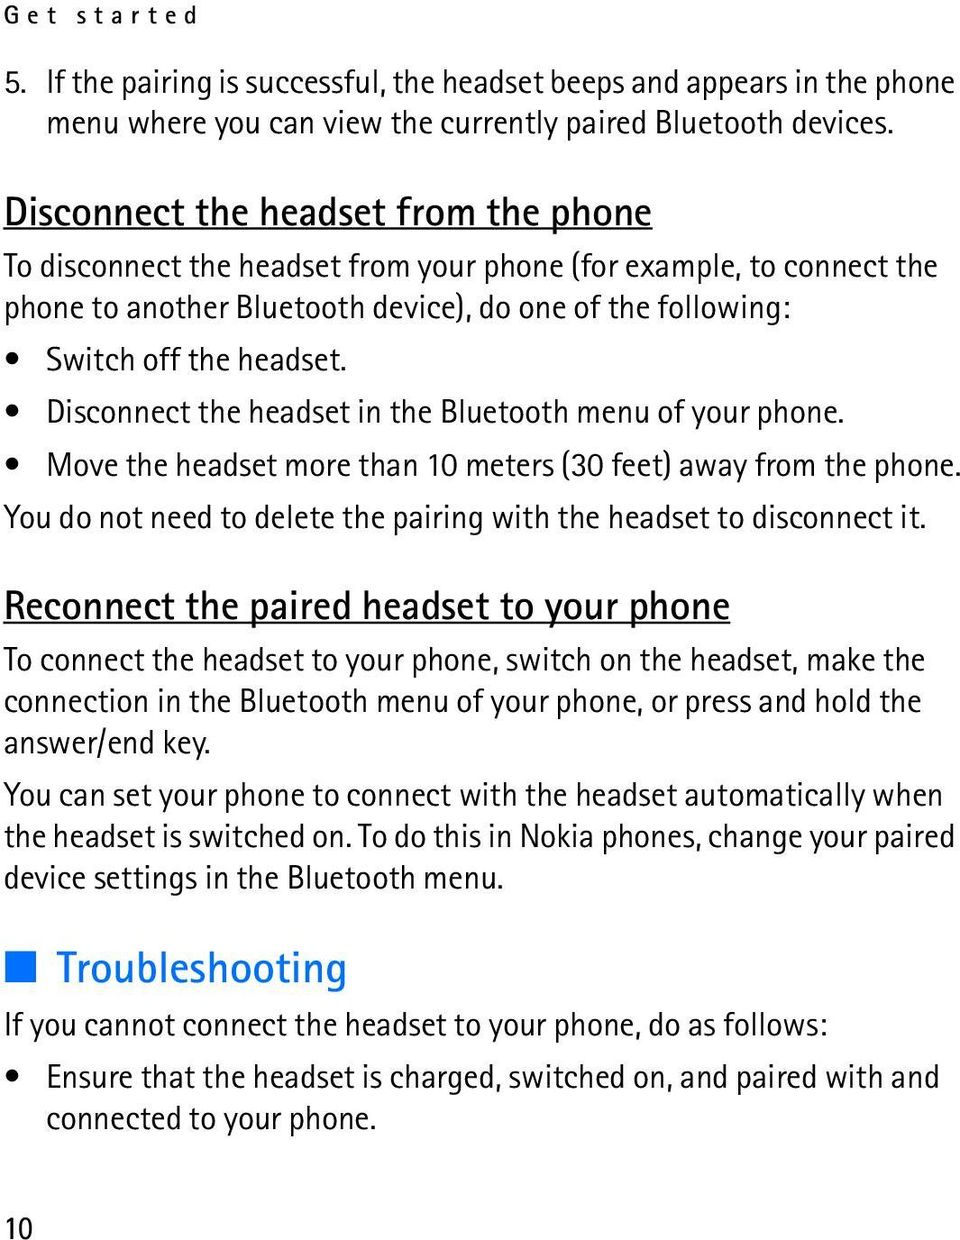 Disconnect the headset in the Bluetooth menu of your phone. Move the headset more than 10 meters (30 feet) away from the phone. You do not need to delete the pairing with the headset to disconnect it.